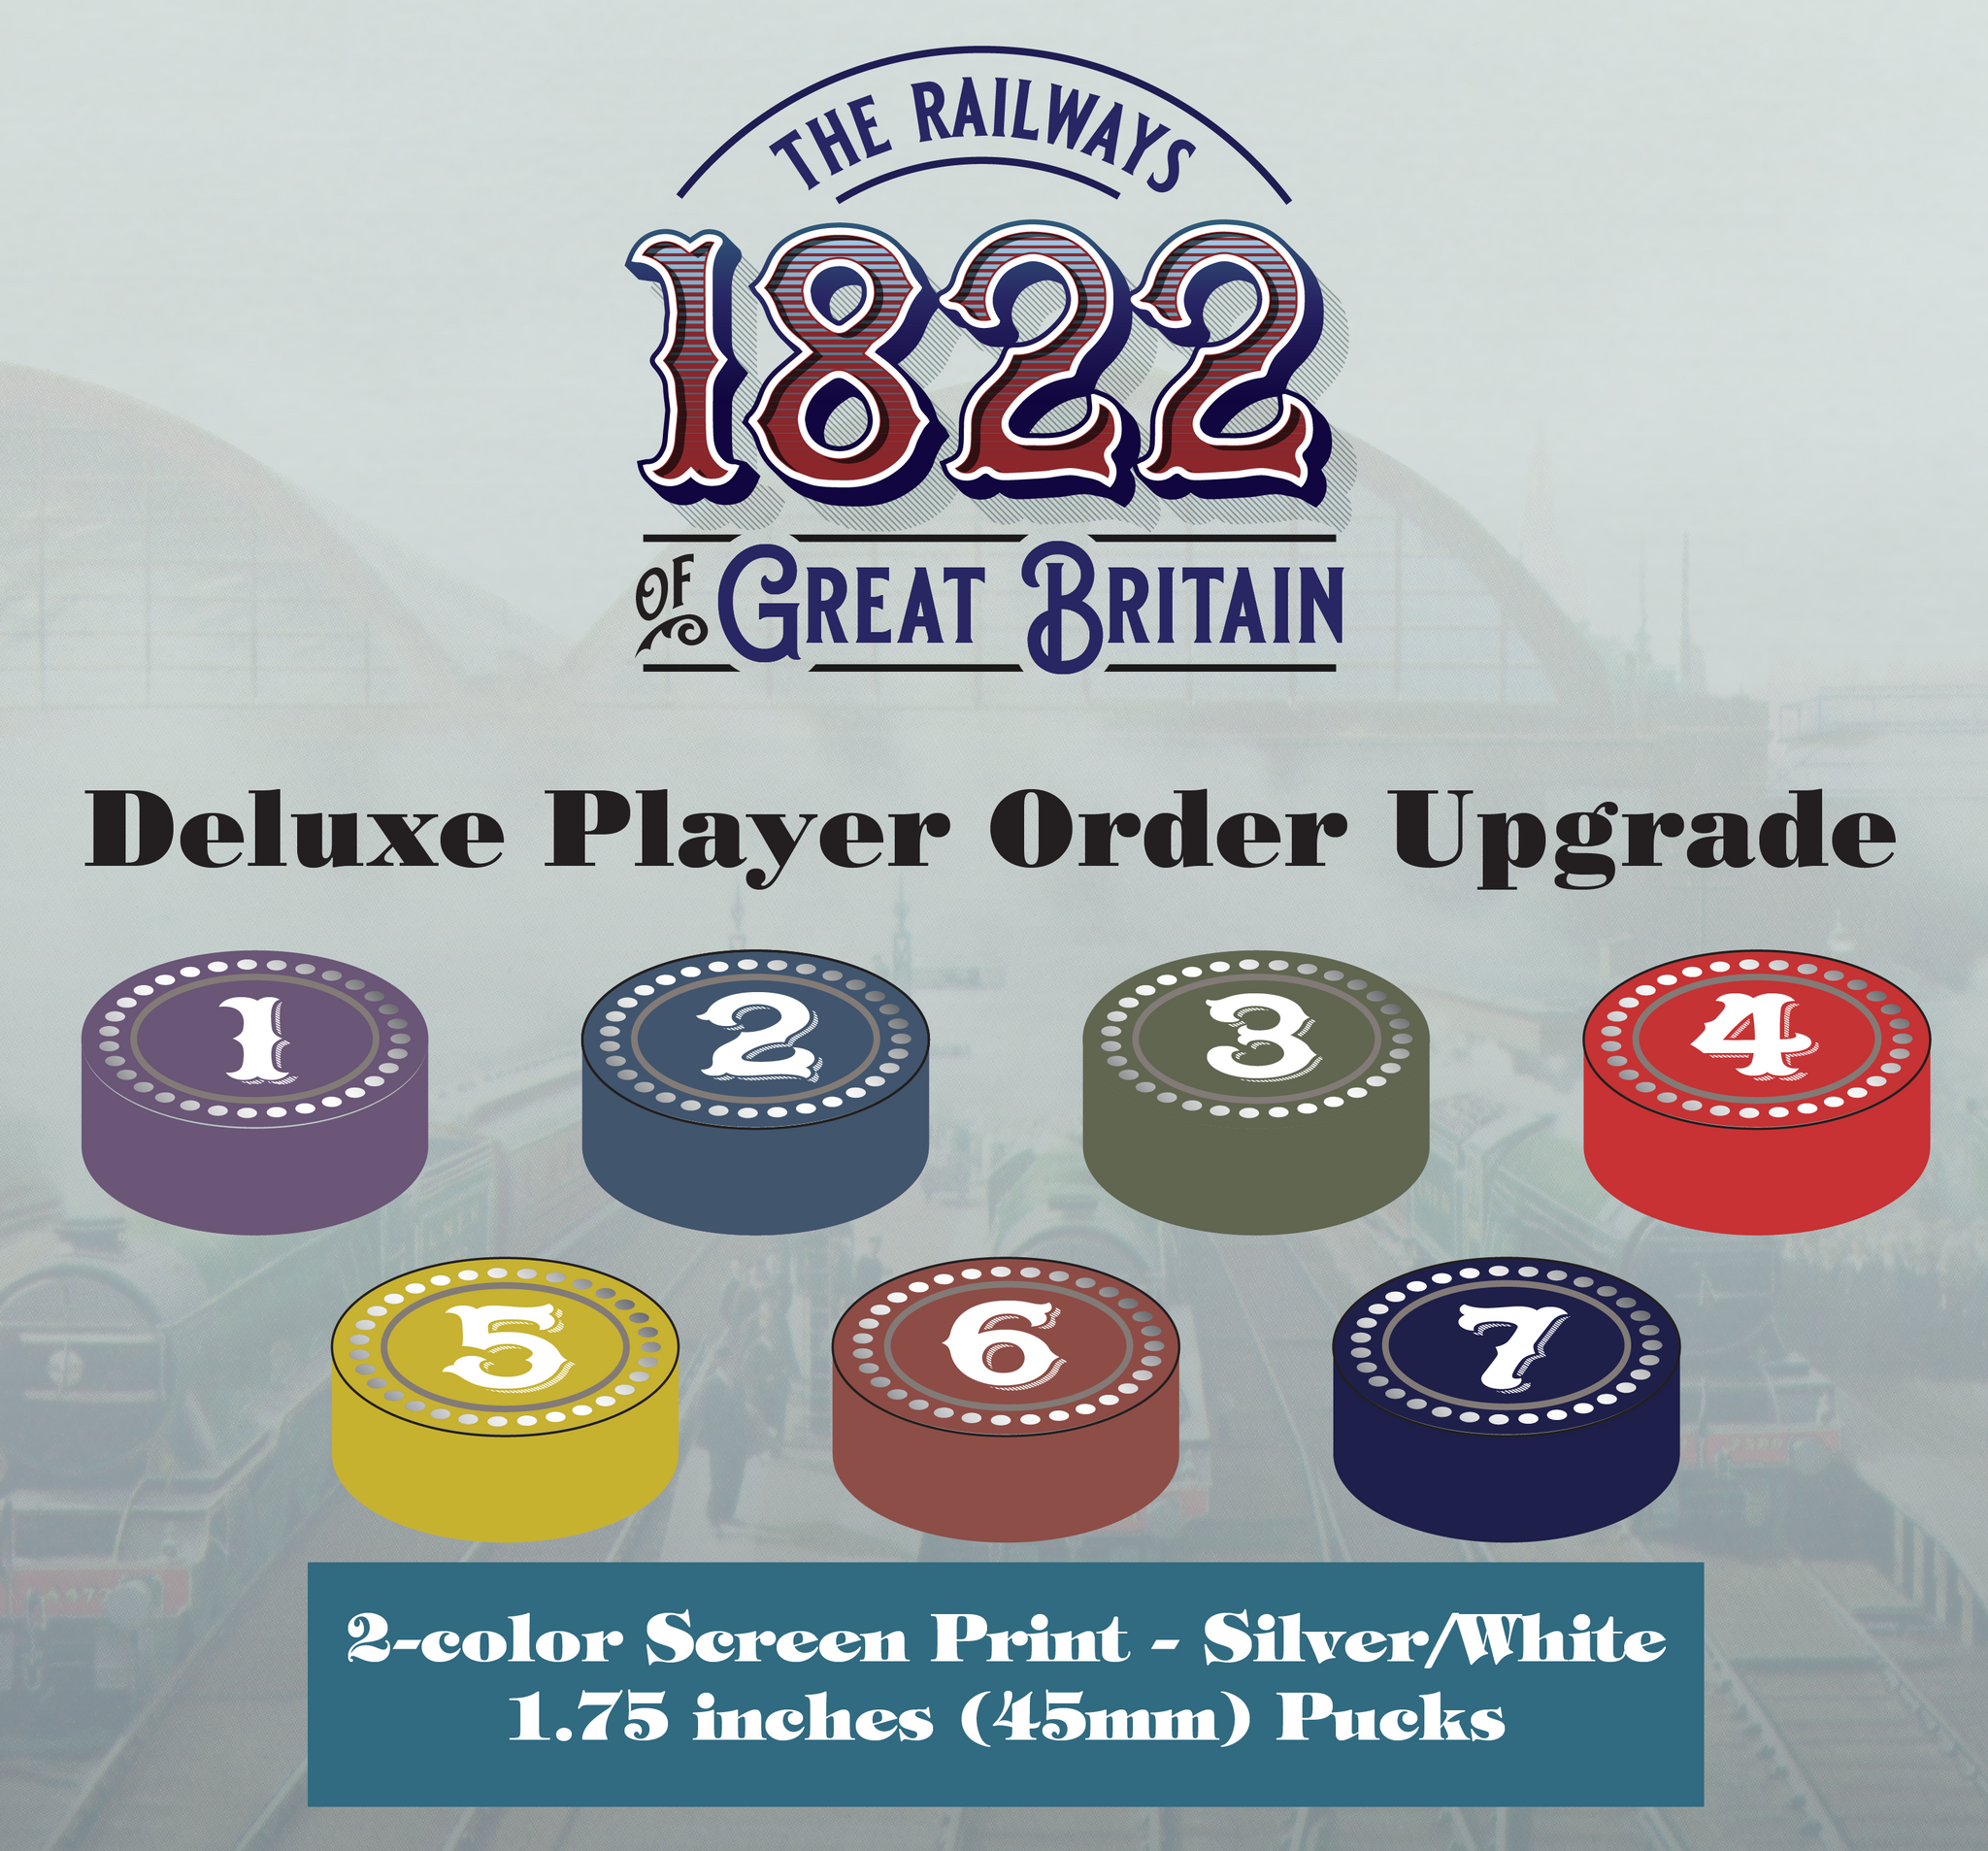 US ONLY - 1822 Deluxe Player Order Upgrade Preorder